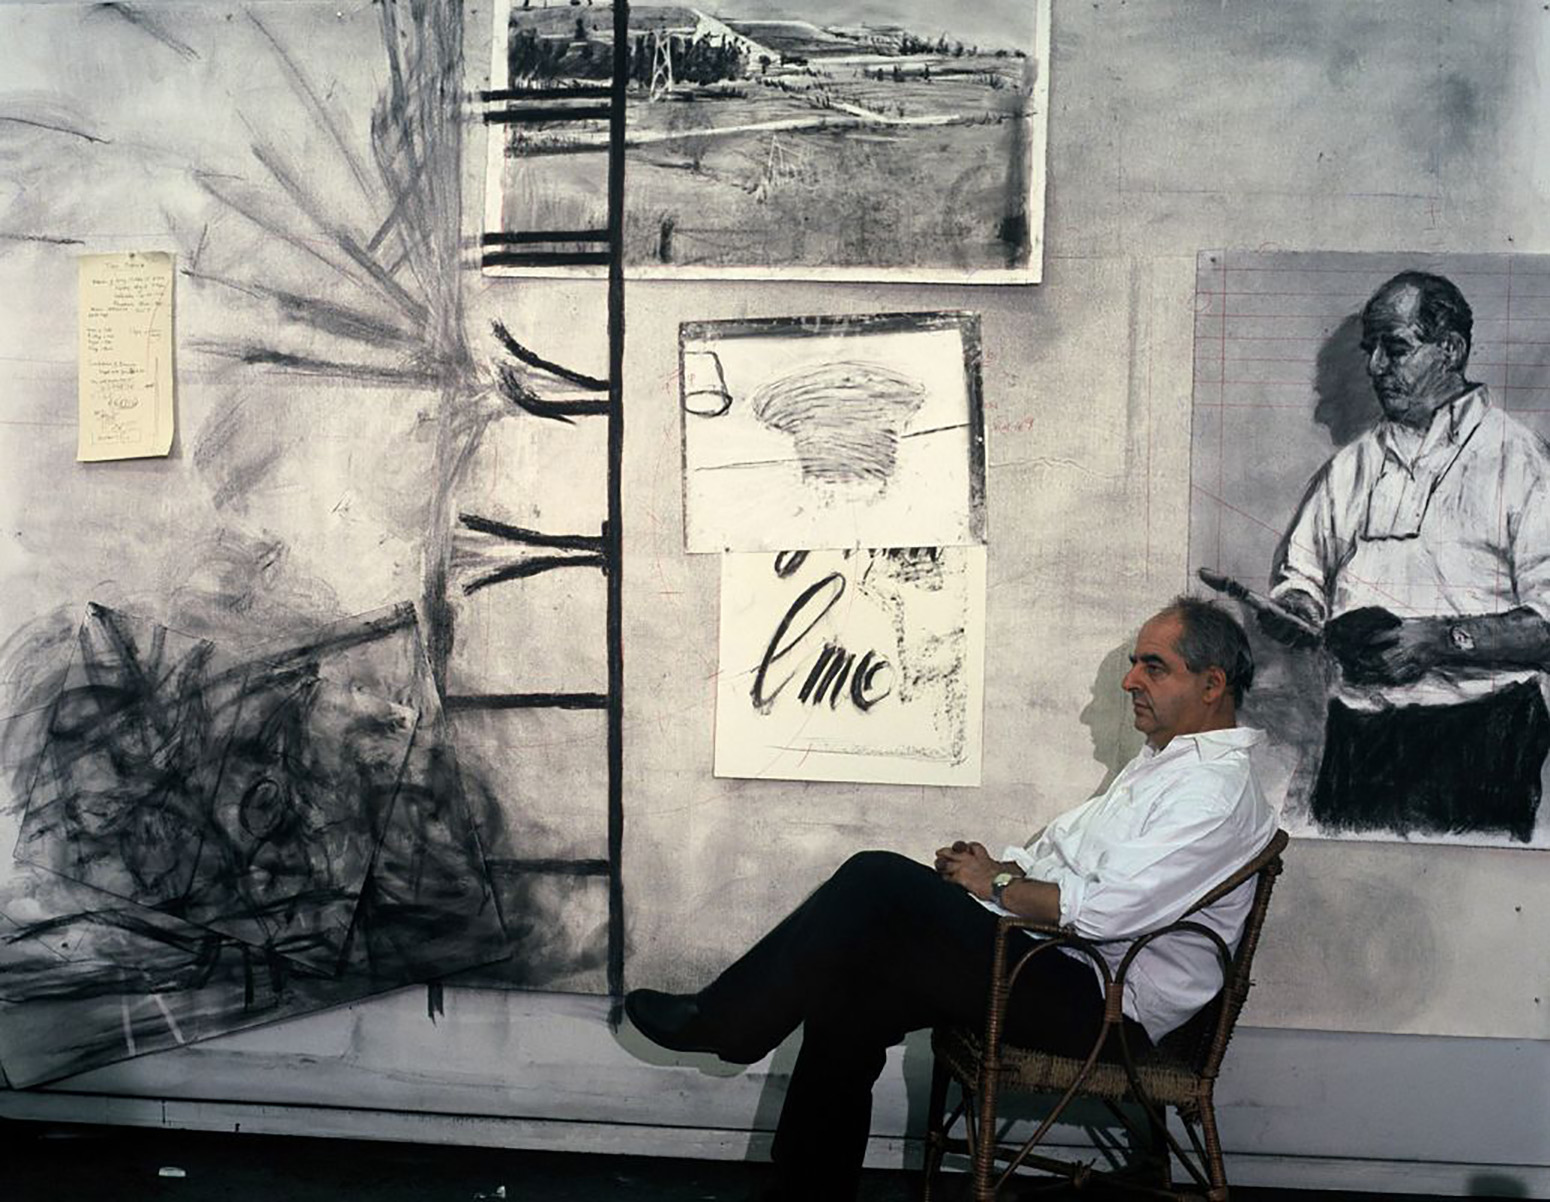 Kentridge in a scene from one of his films.